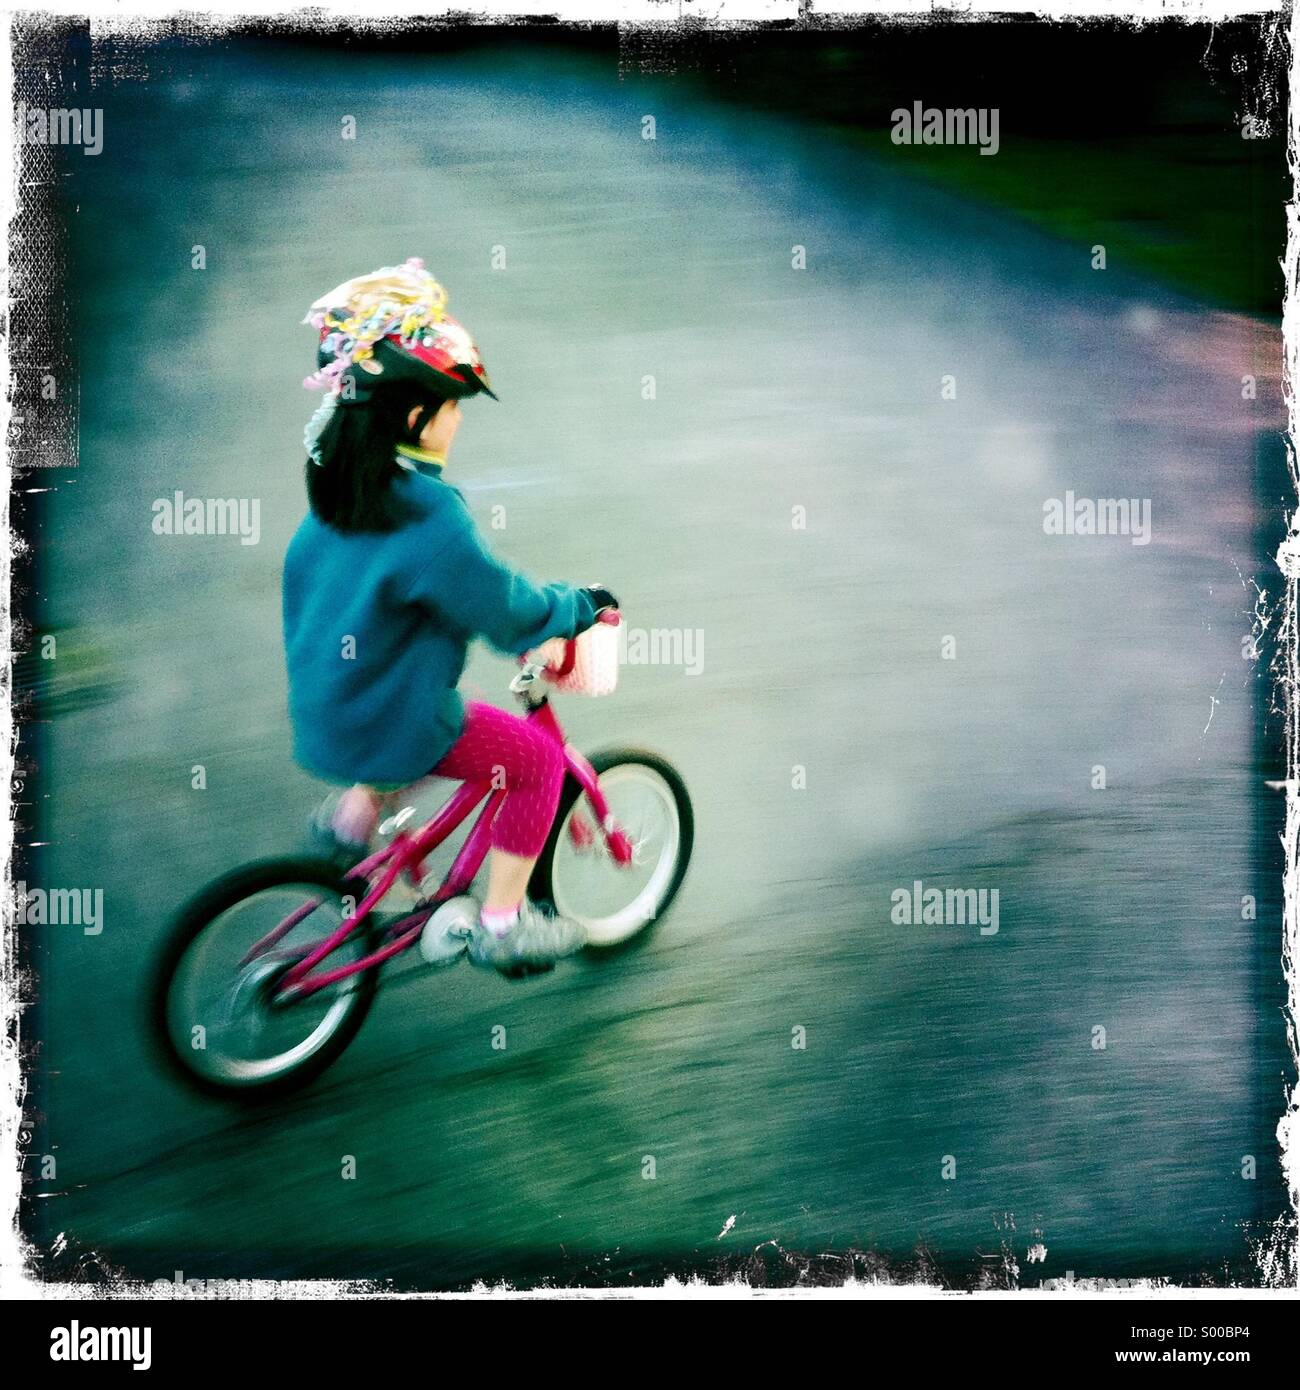 Girl riding bicycle. - Stock Image